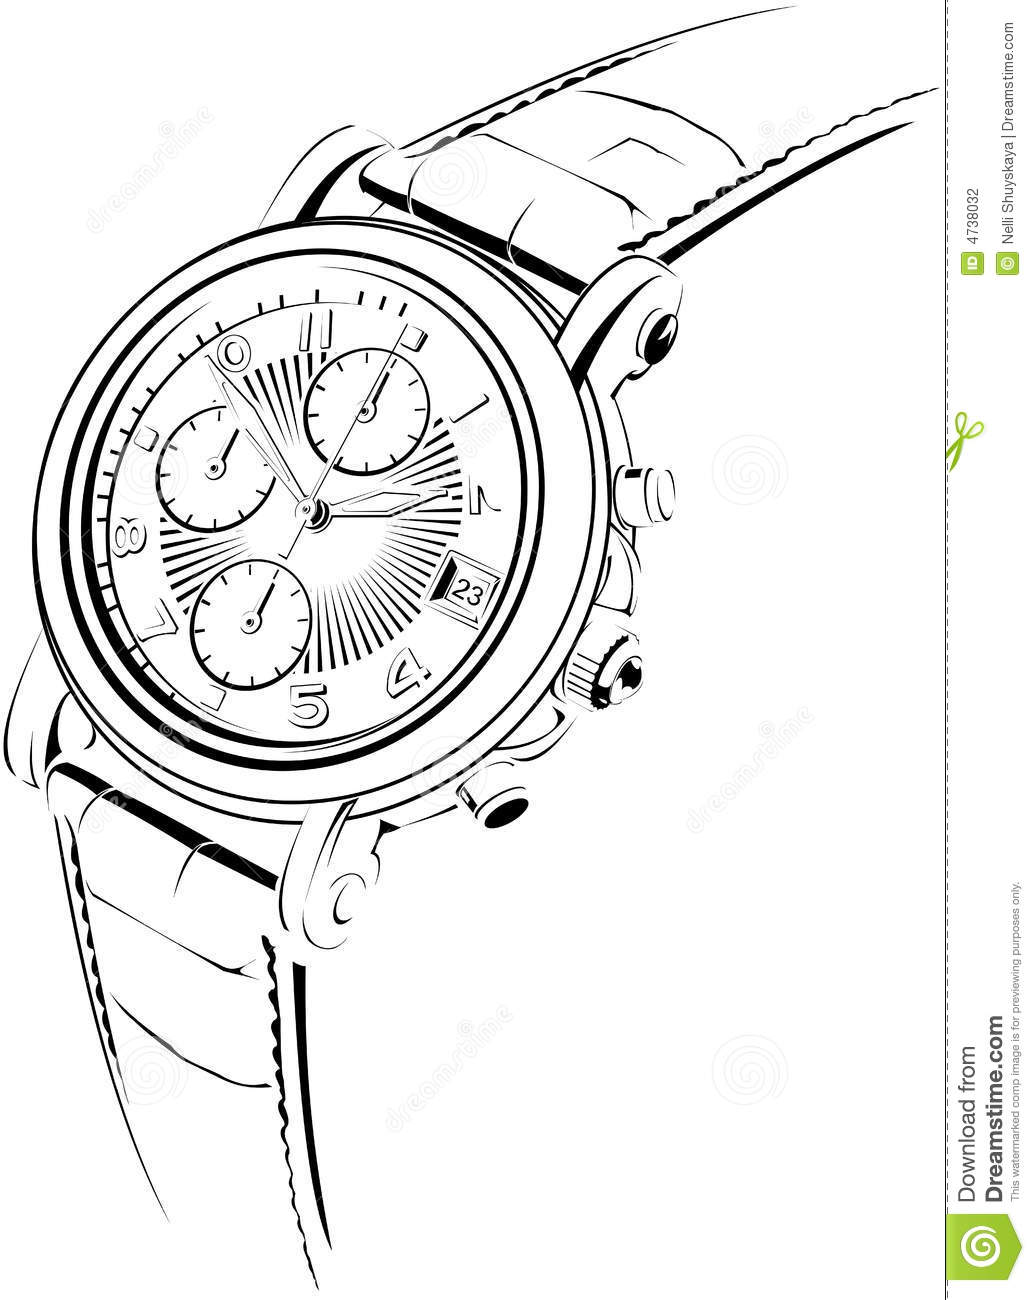 Manual watch stock vector. Illustration of history, clock